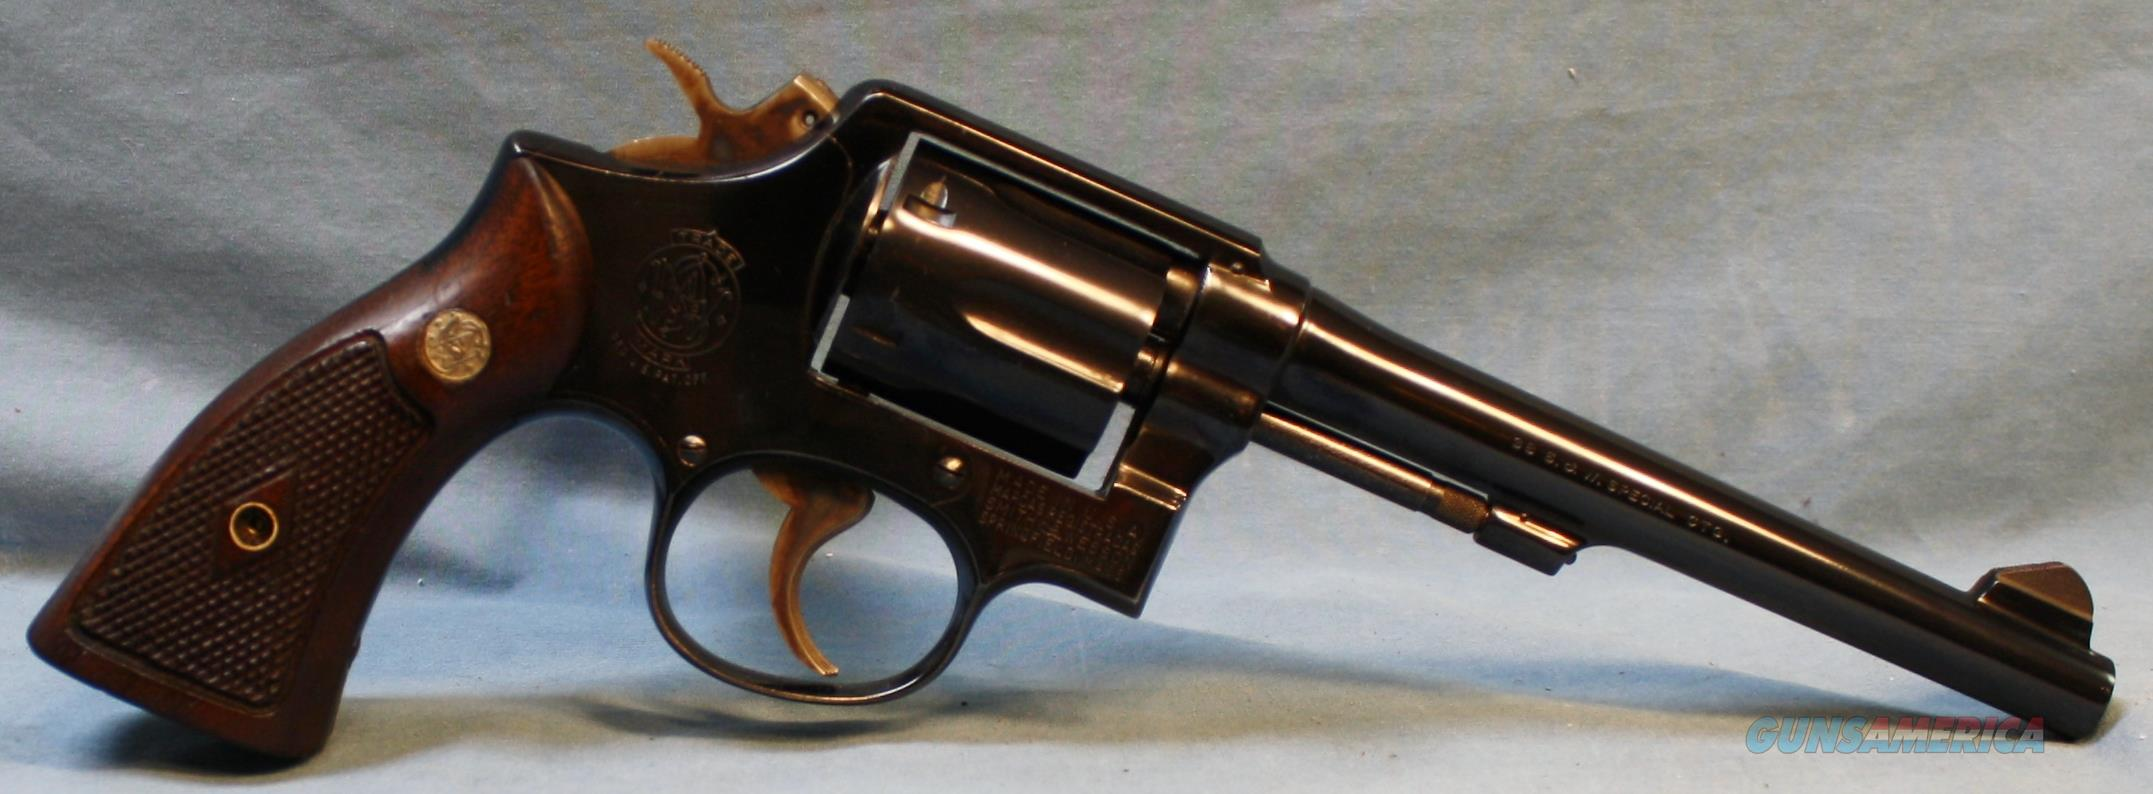 Smith & Wesson model 10-5 Double Action Revolver, made in 1962, 38spl Free Shipping!!  Guns > Pistols > Smith & Wesson Revolvers > Model 10